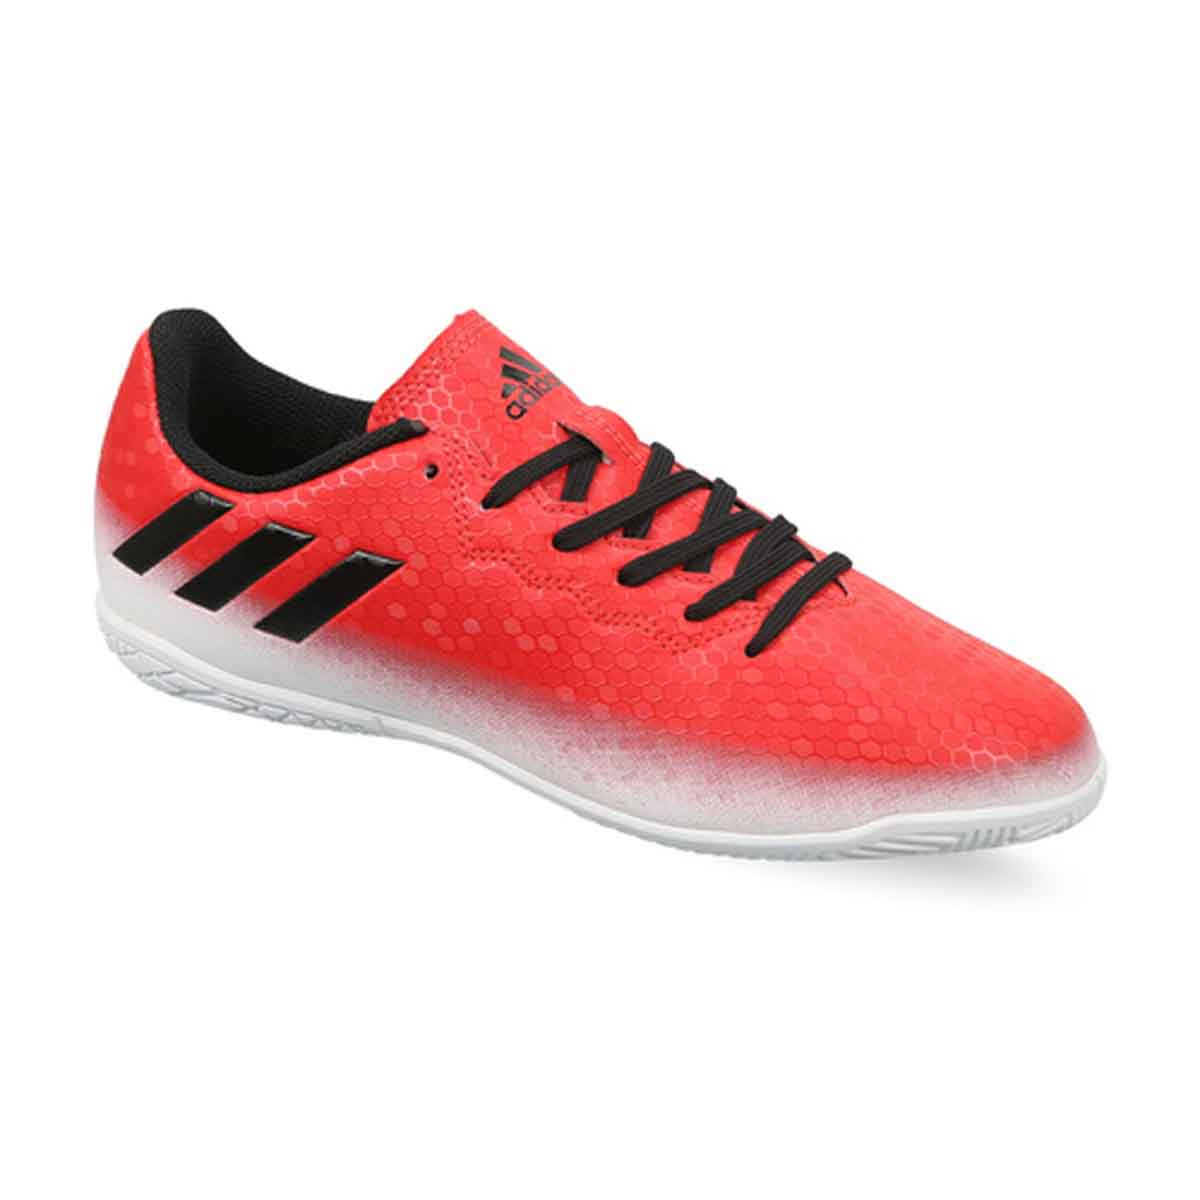 Buy Adidas Messi 16.3 IN Football Shoes Online in India bfcb2ee70